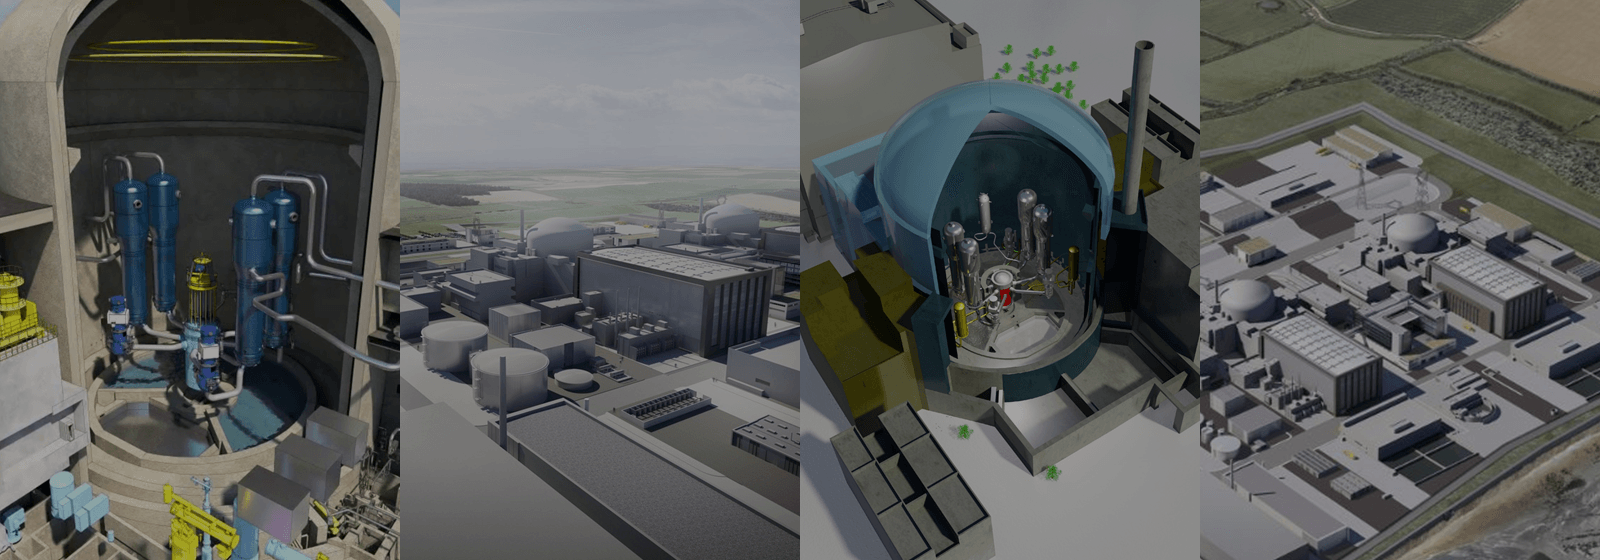 The reactor at Hinkley Point C